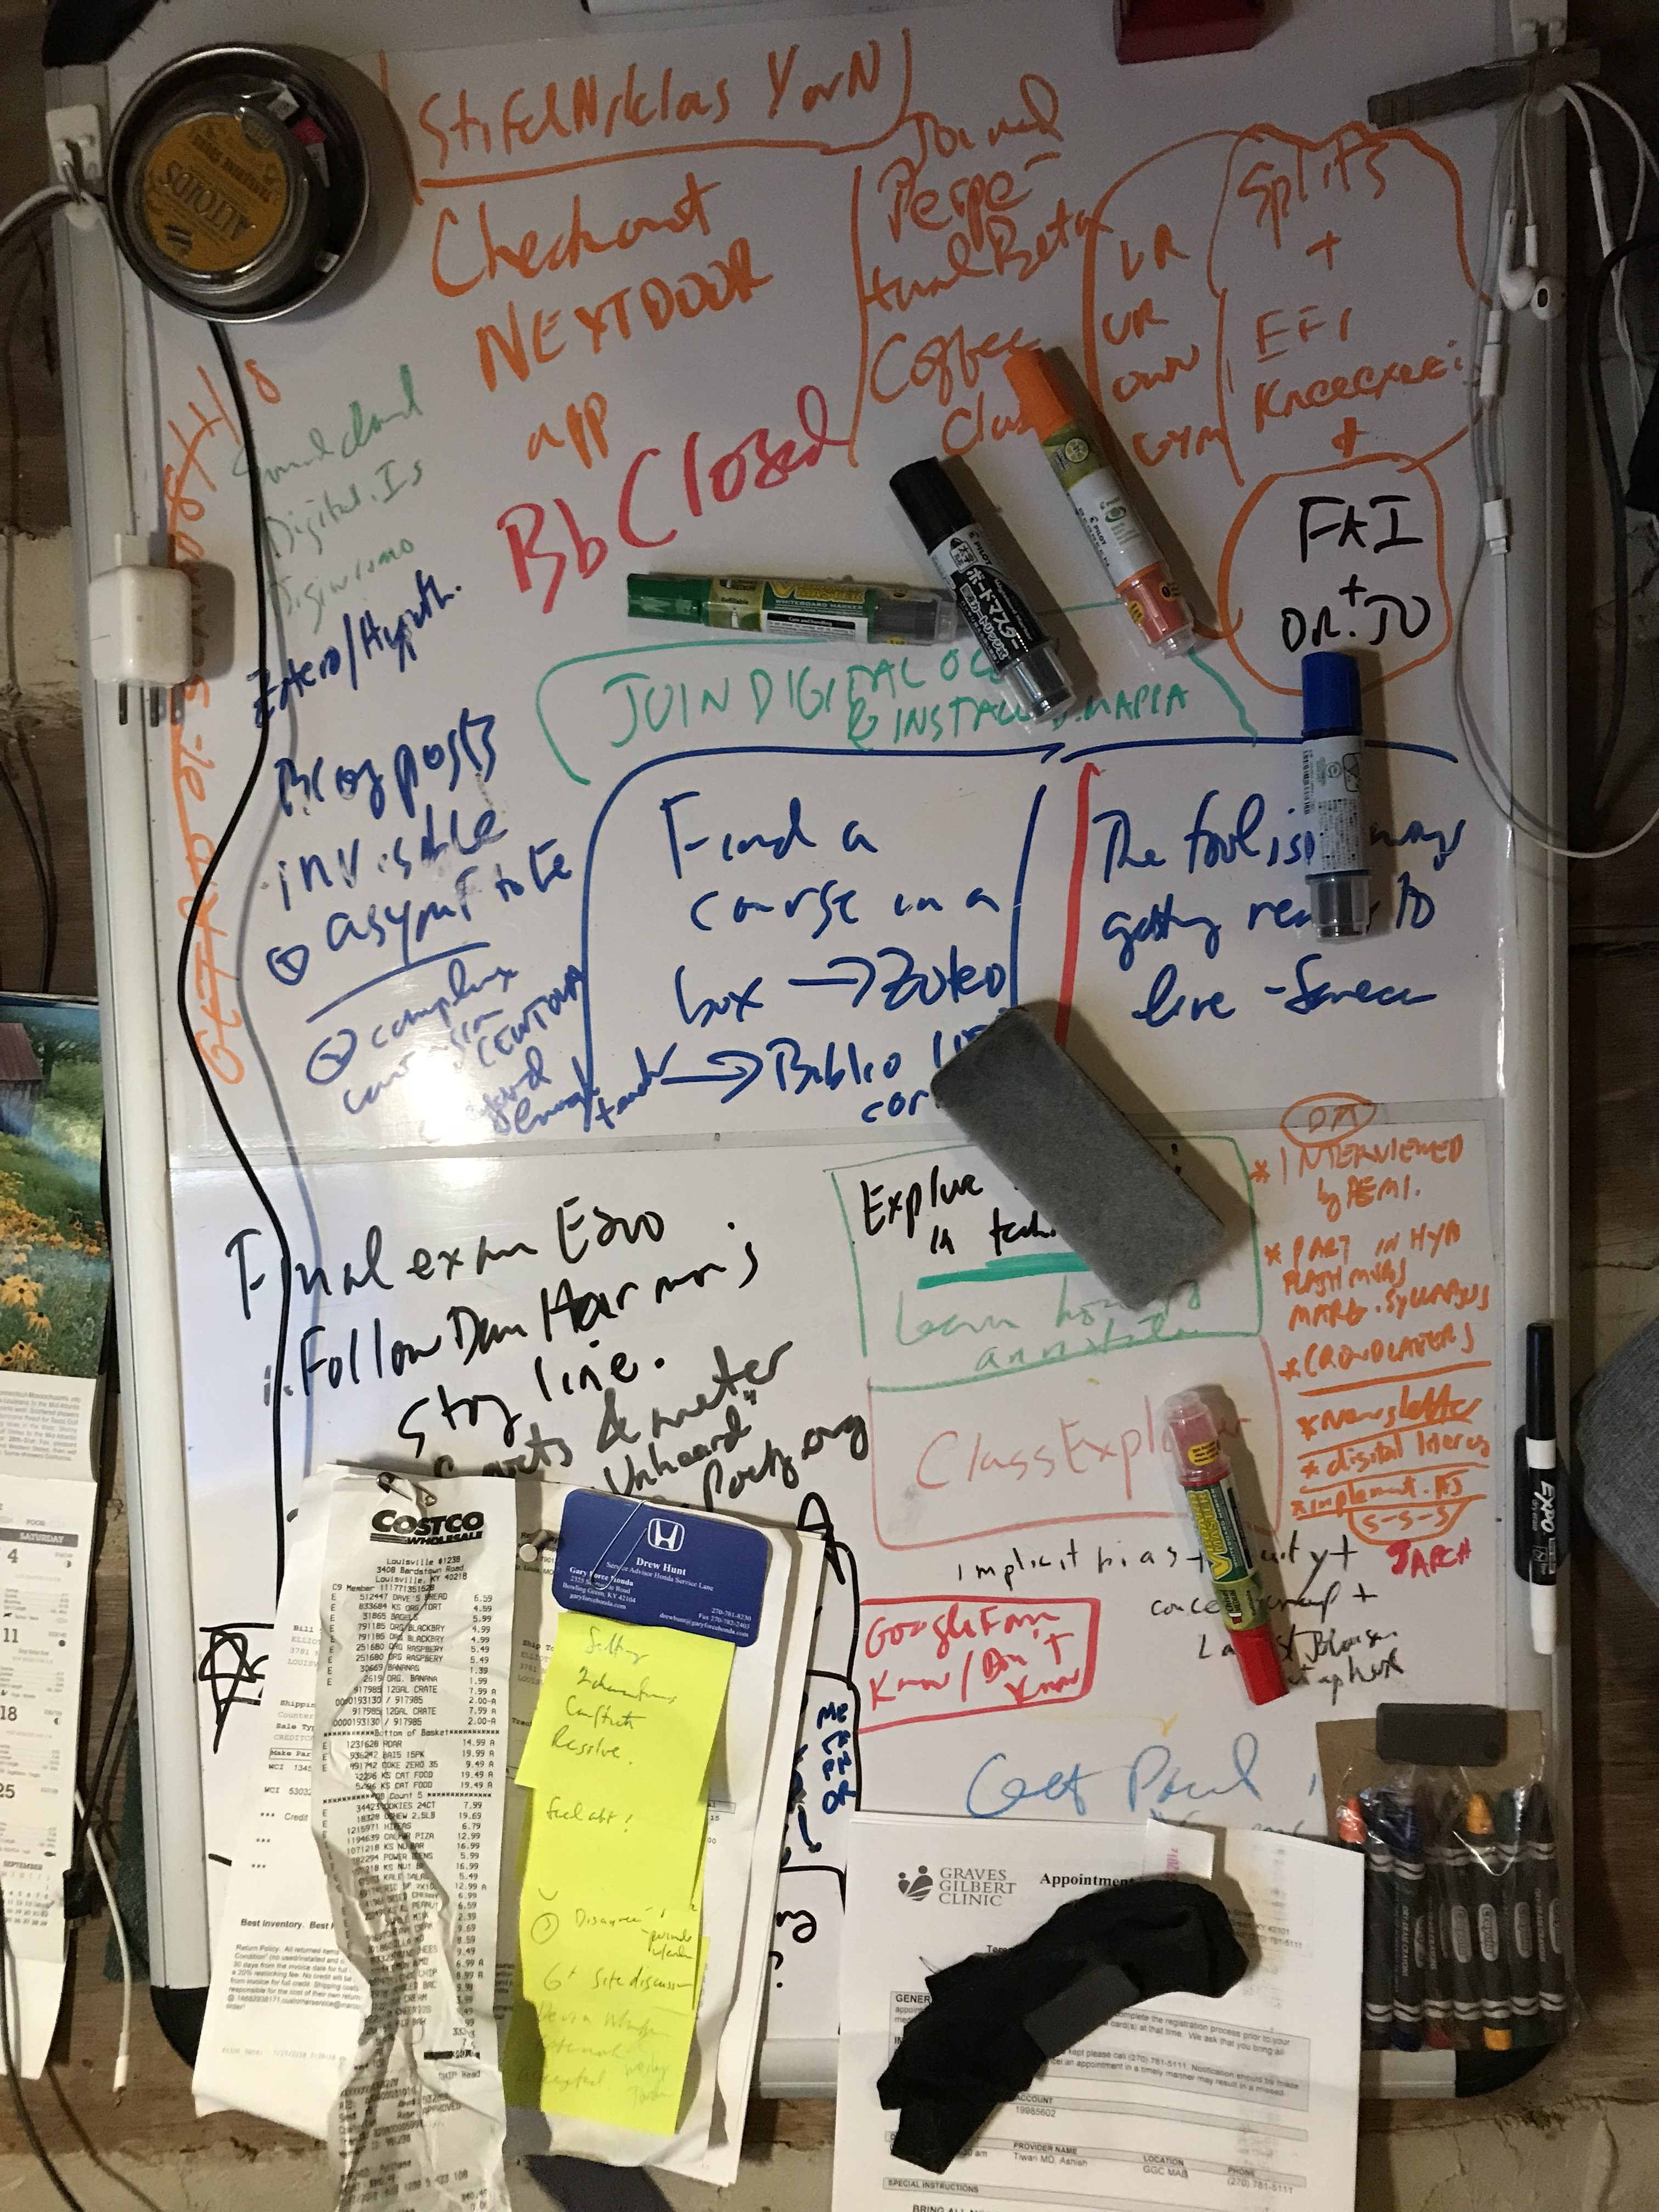 a messy office whiteboard